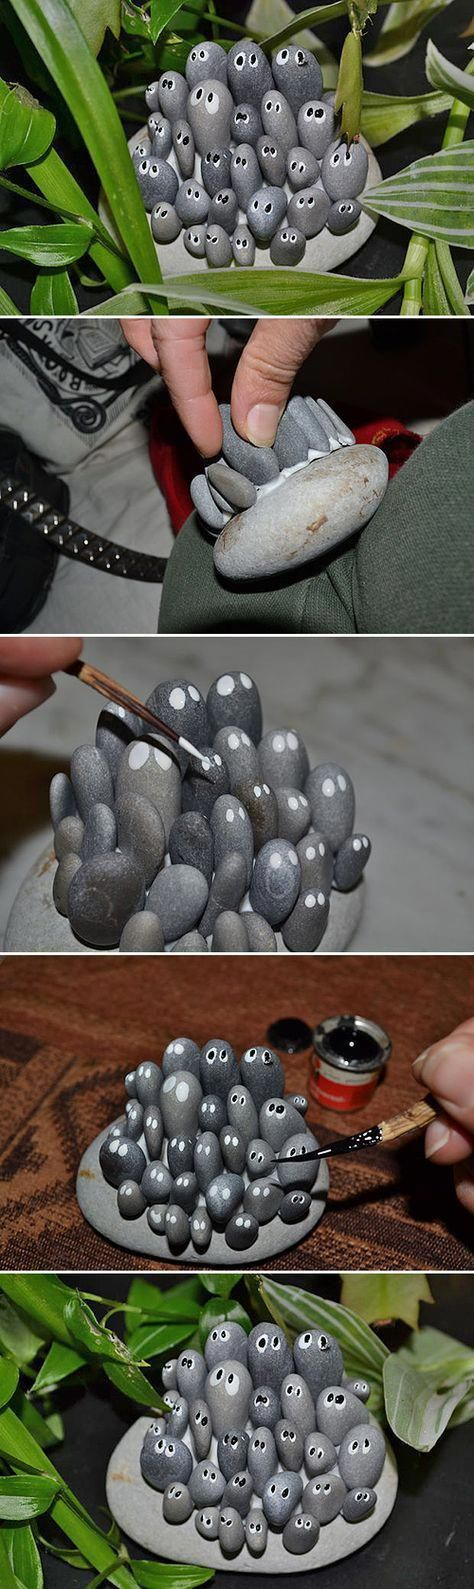 DIY Garden Trinkets & Yard Decorations | The Garden Glove #steingartenideen